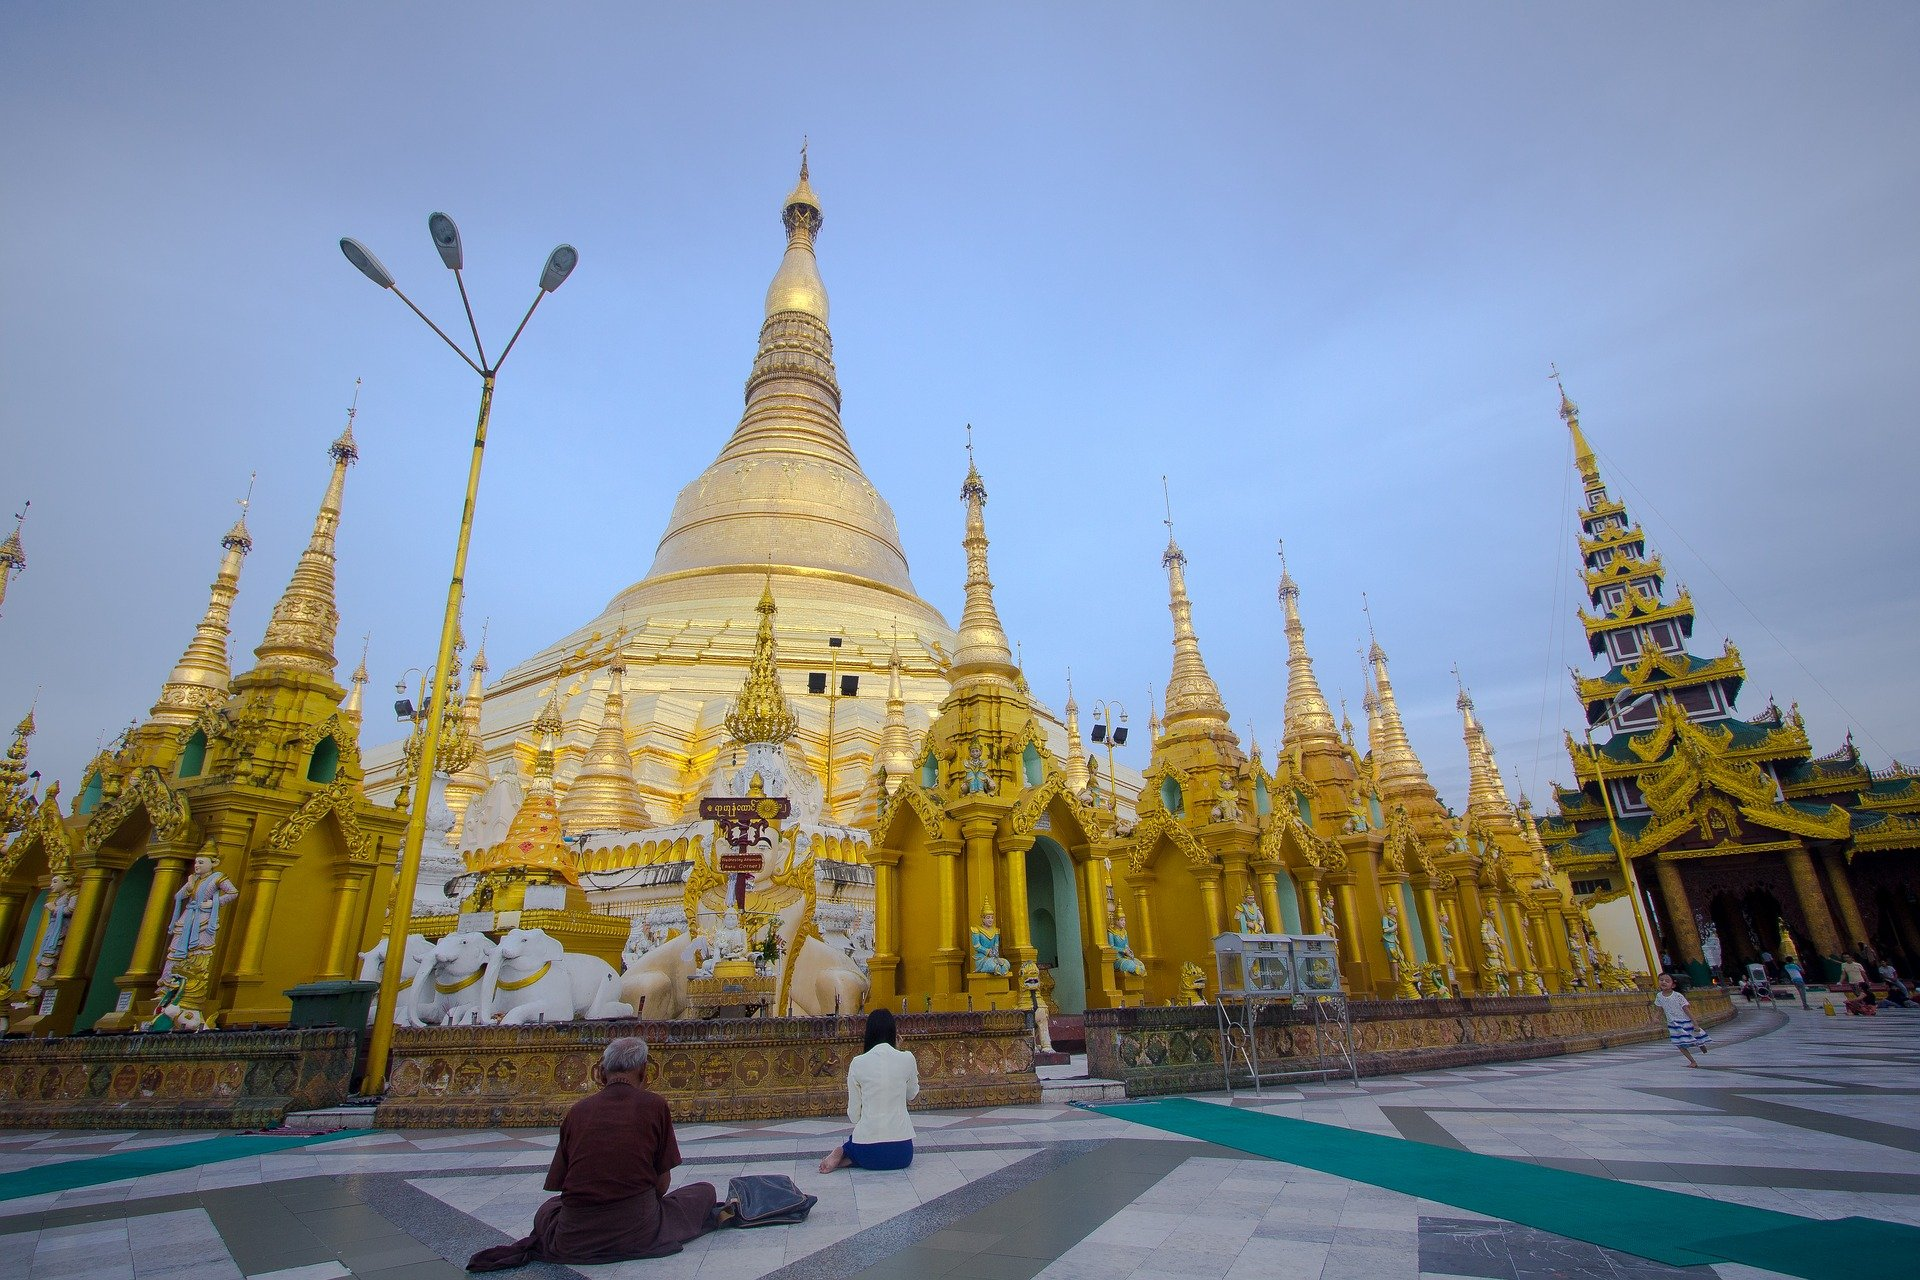 The main stupa at Shwedagon Pagoda